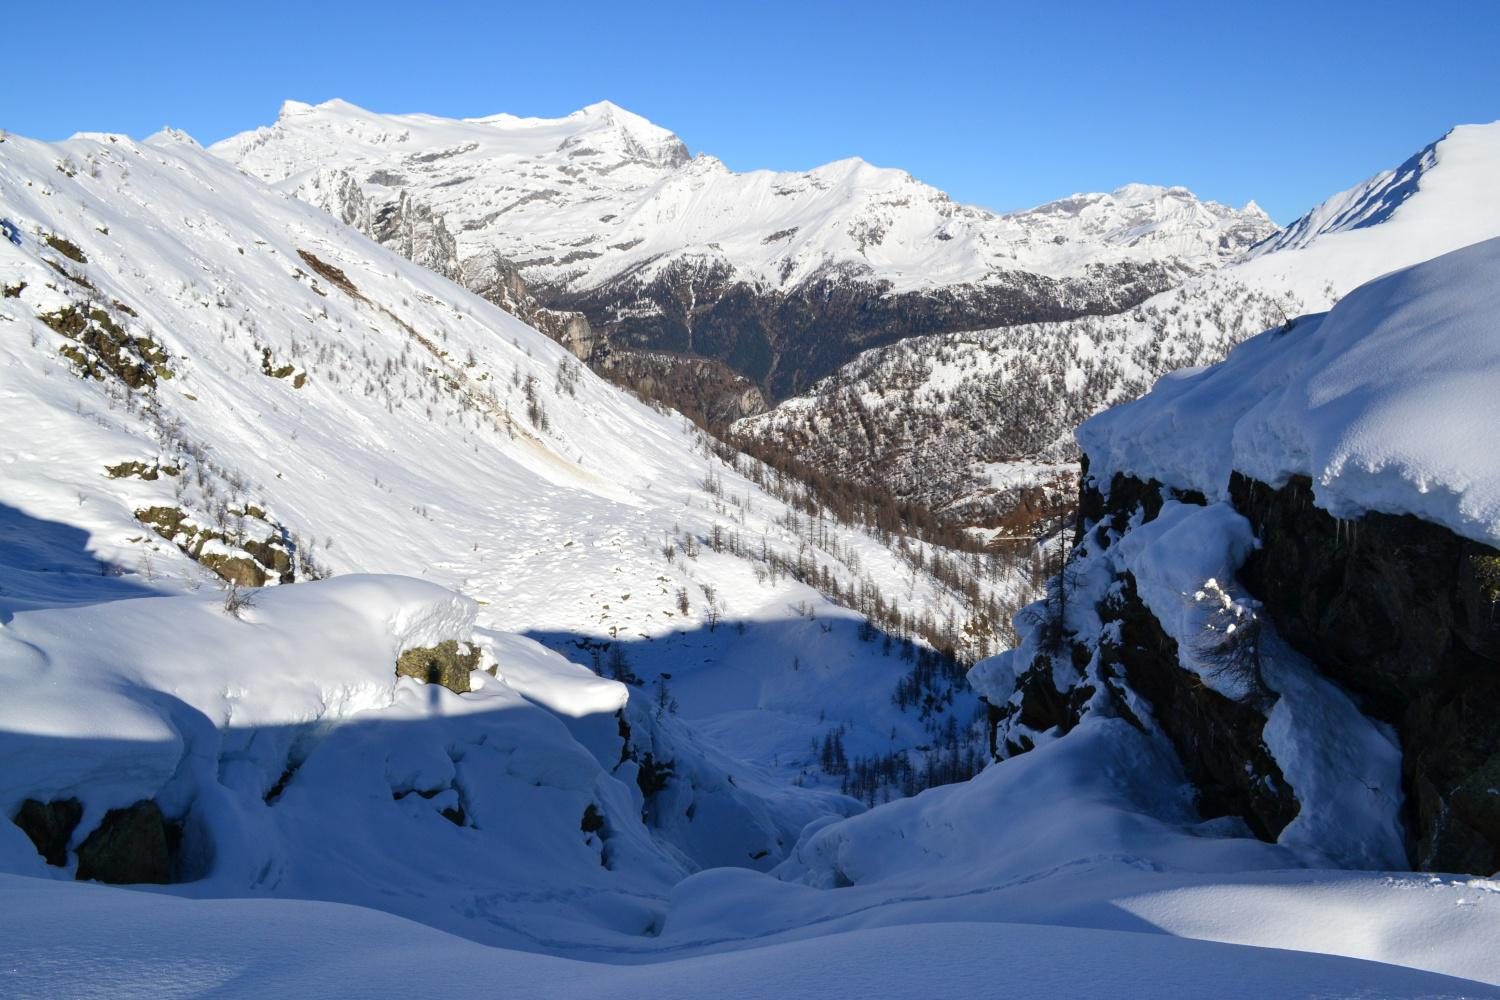 panorama verso valle in uscita dal canale